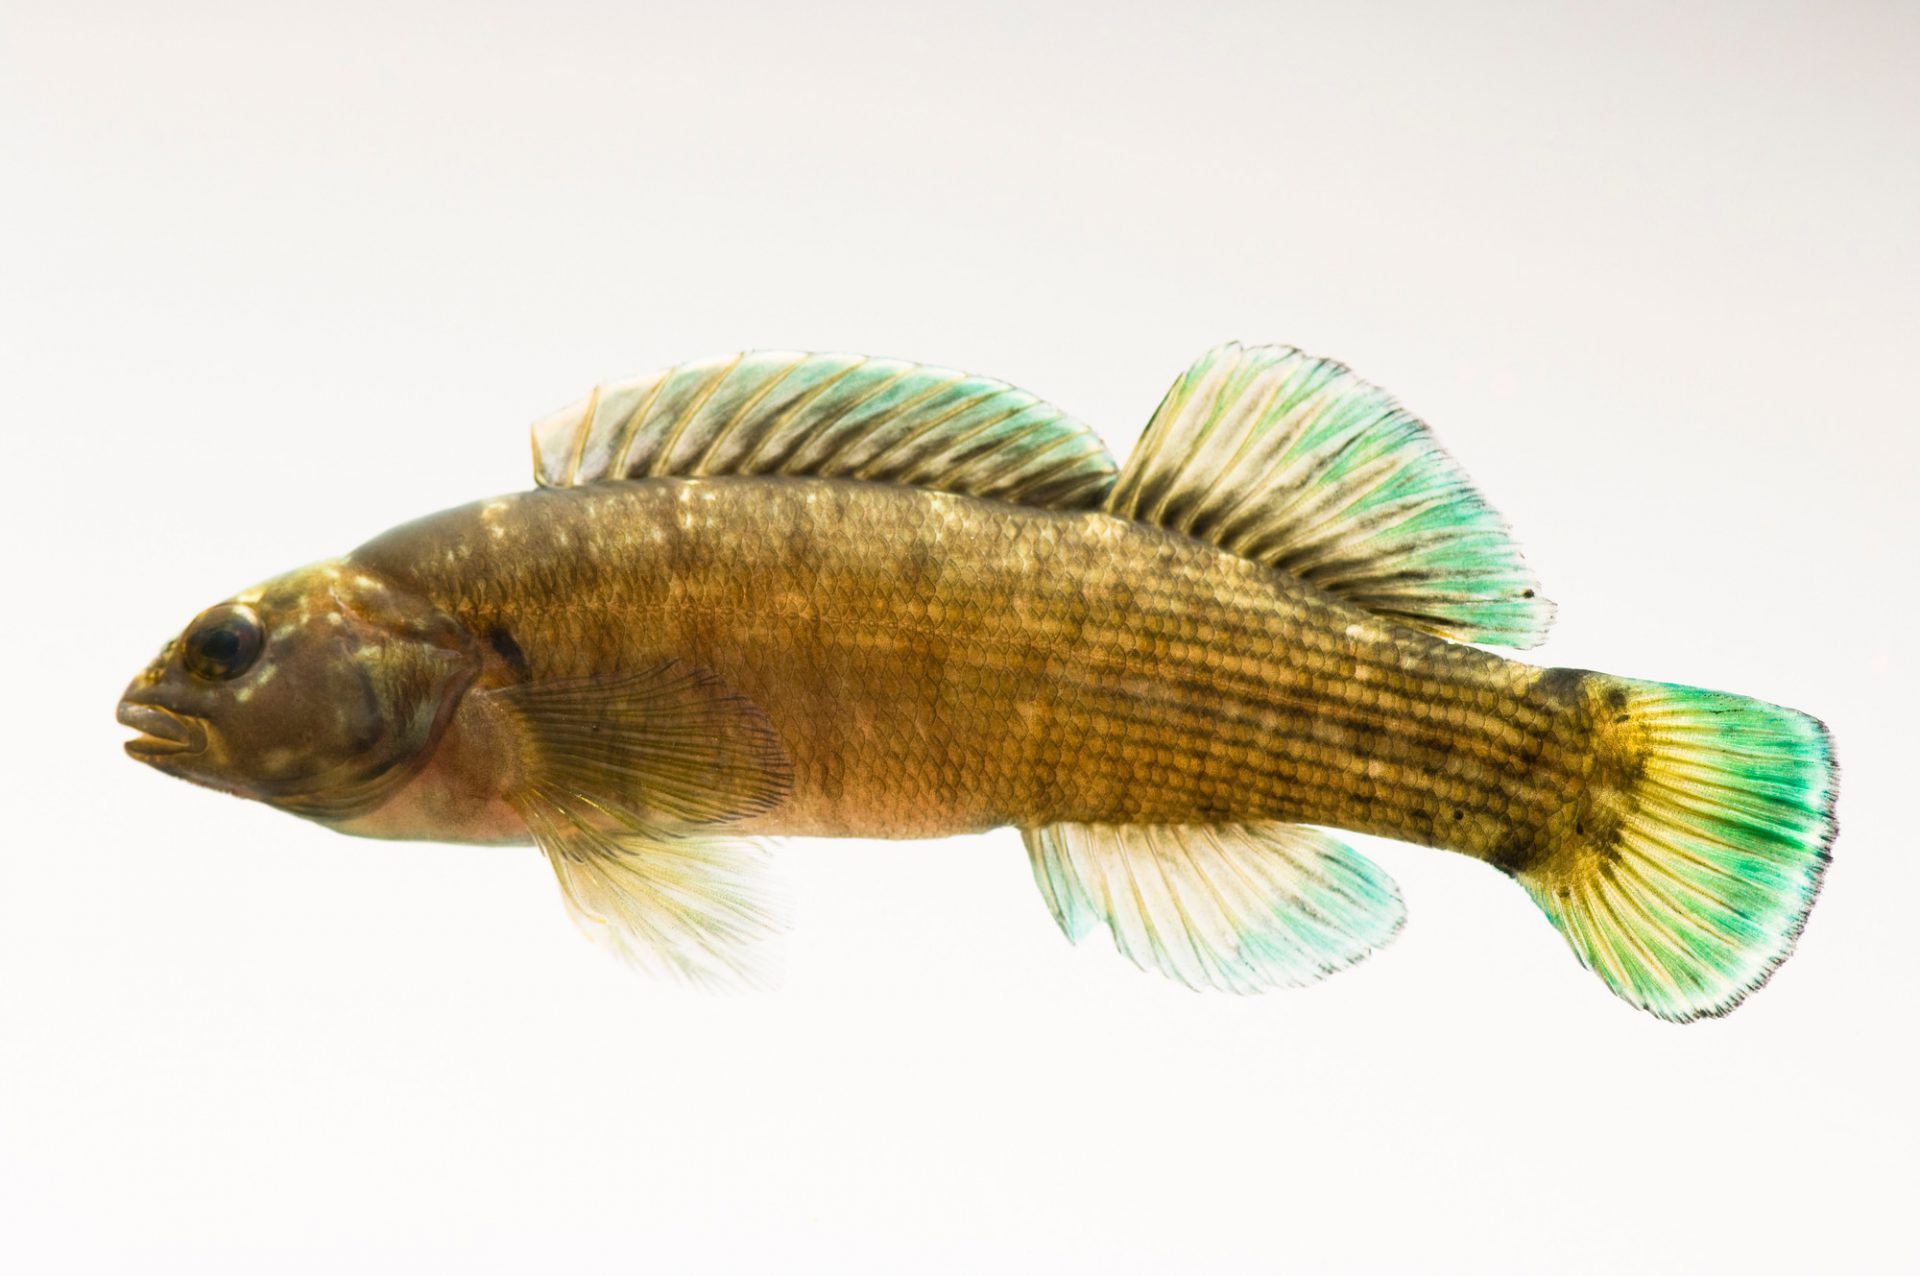 A vulnerable (IUCN) and federally endangered Boulder darter (Etheostoma wapiti) at Conservation Fisheries.